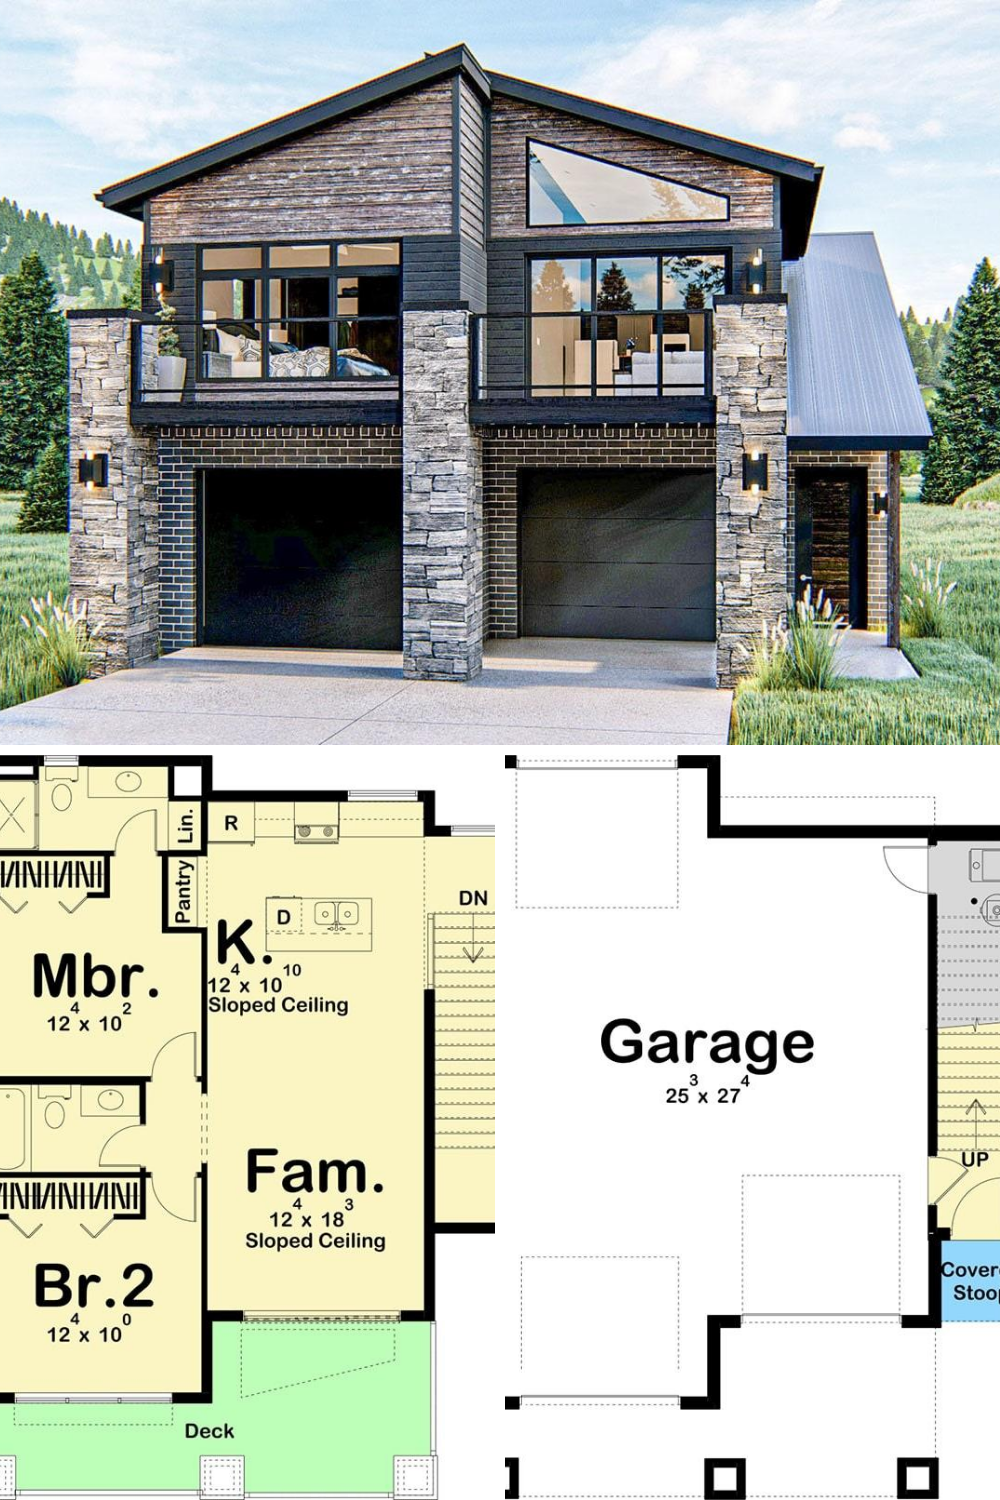 2 Bedroom Two Story Modern Mountain Carriage Home Floor Plan Carriage House Plans Floor Plans Mansion Floor Plan